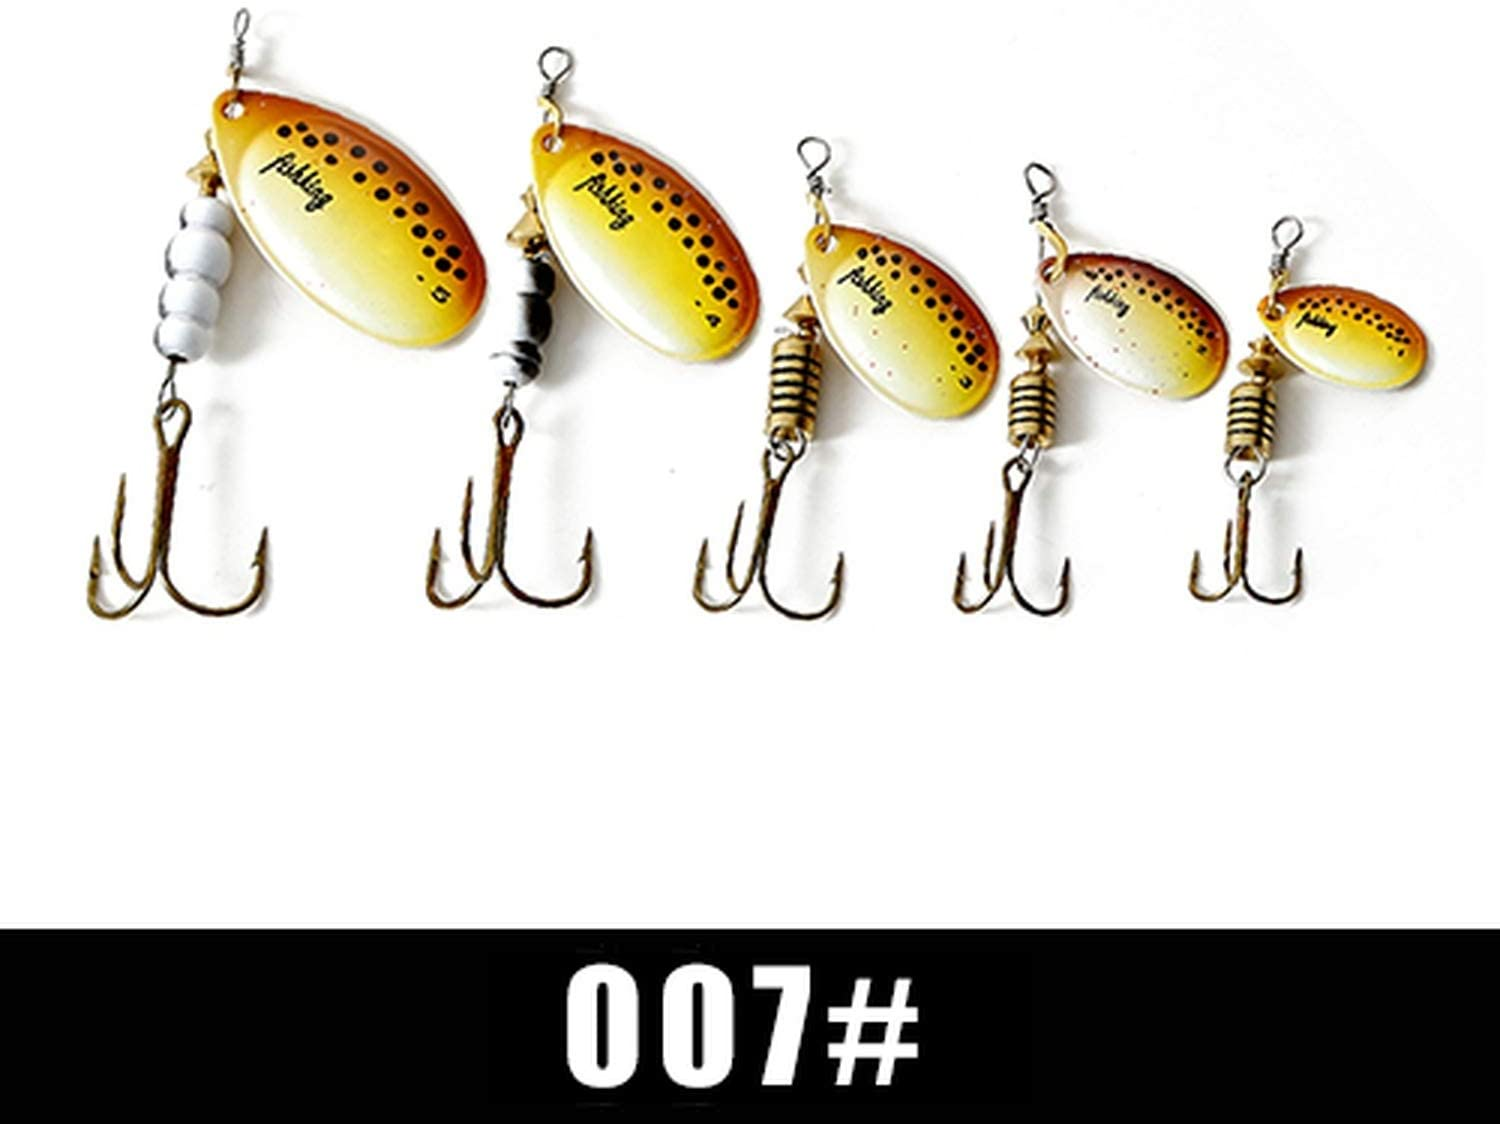 OH WHY Spinner Bait 1pc 3.2g 4.3g 6.1g 9.6g 13.6g Fishing Lure Bass Hard Baits Spoon with Treble Hook Tackle,007,3.2g